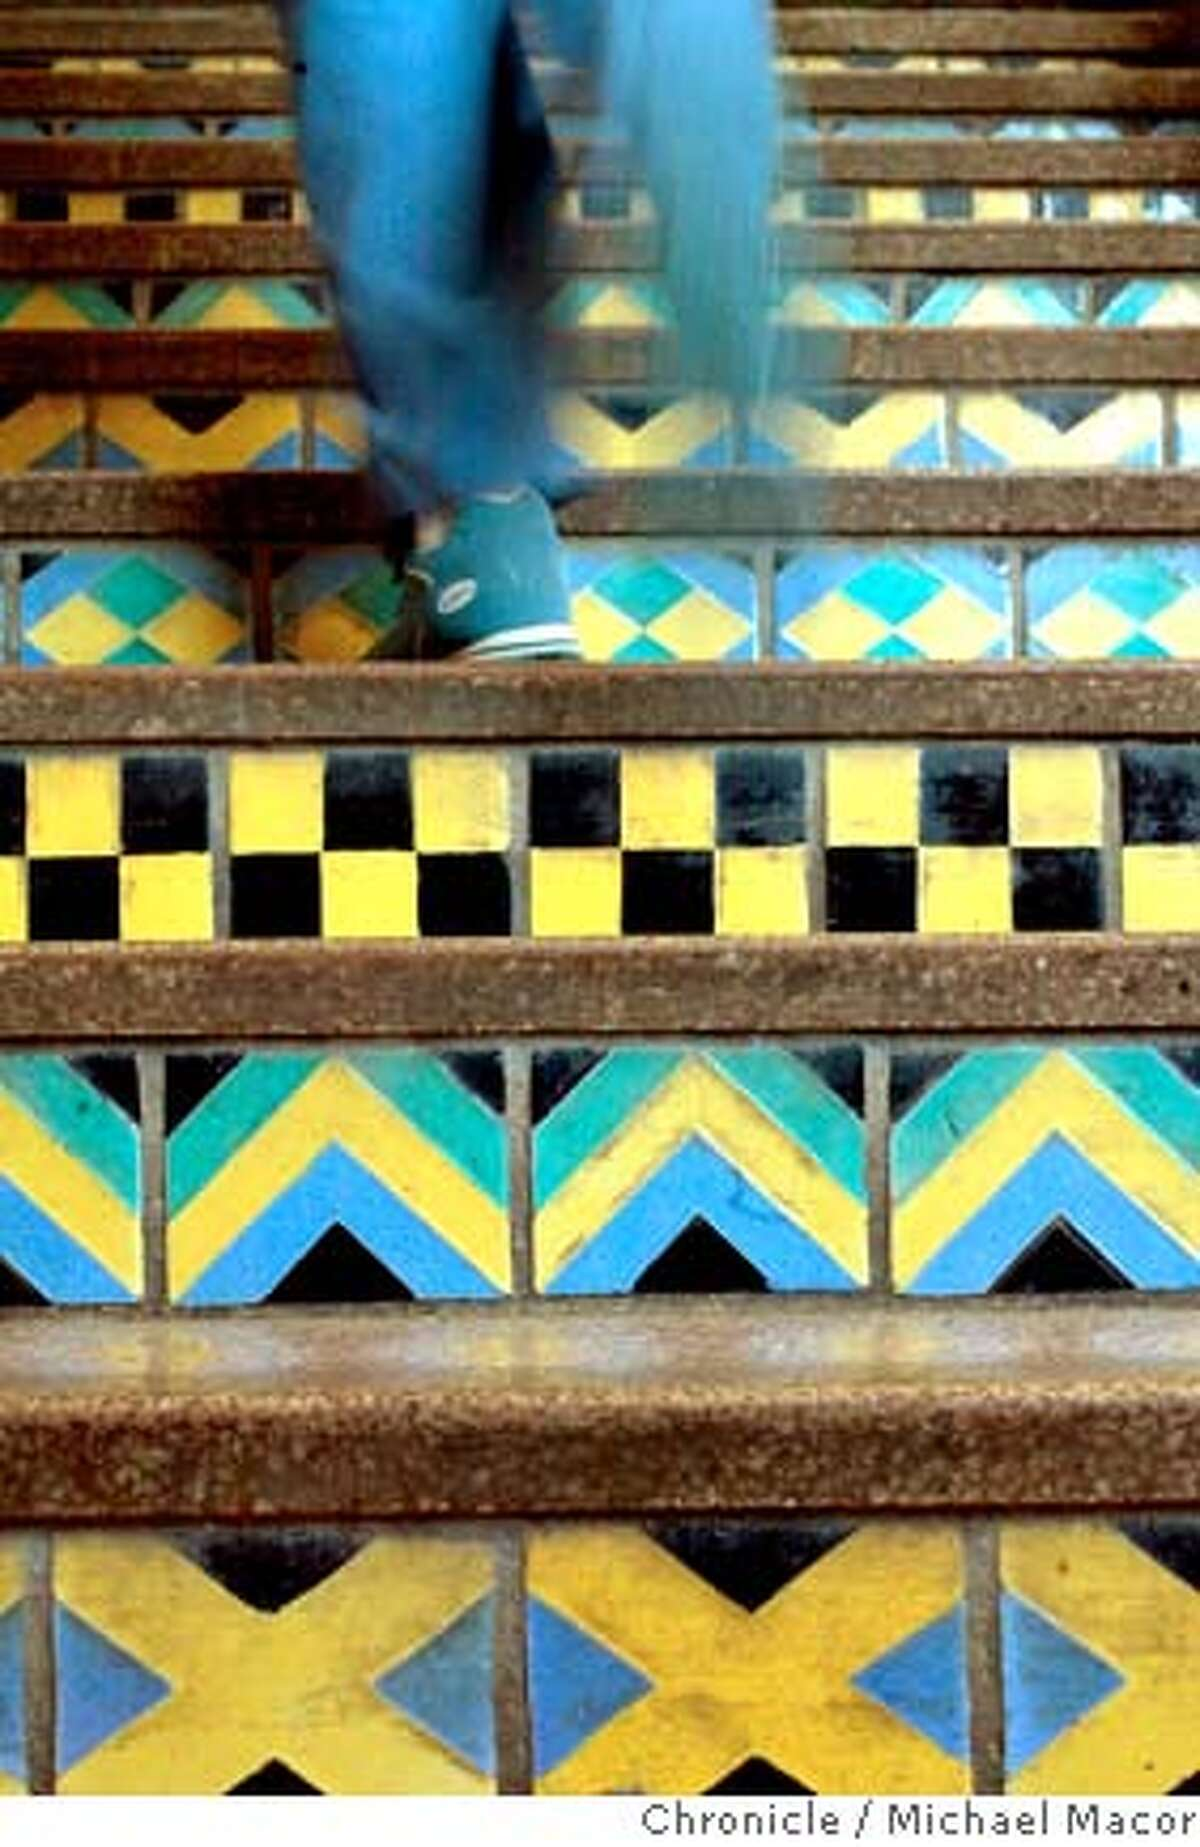 Blue tile steps lead up to the library building at Balboa High School. Chronicle photo by Michael Macor